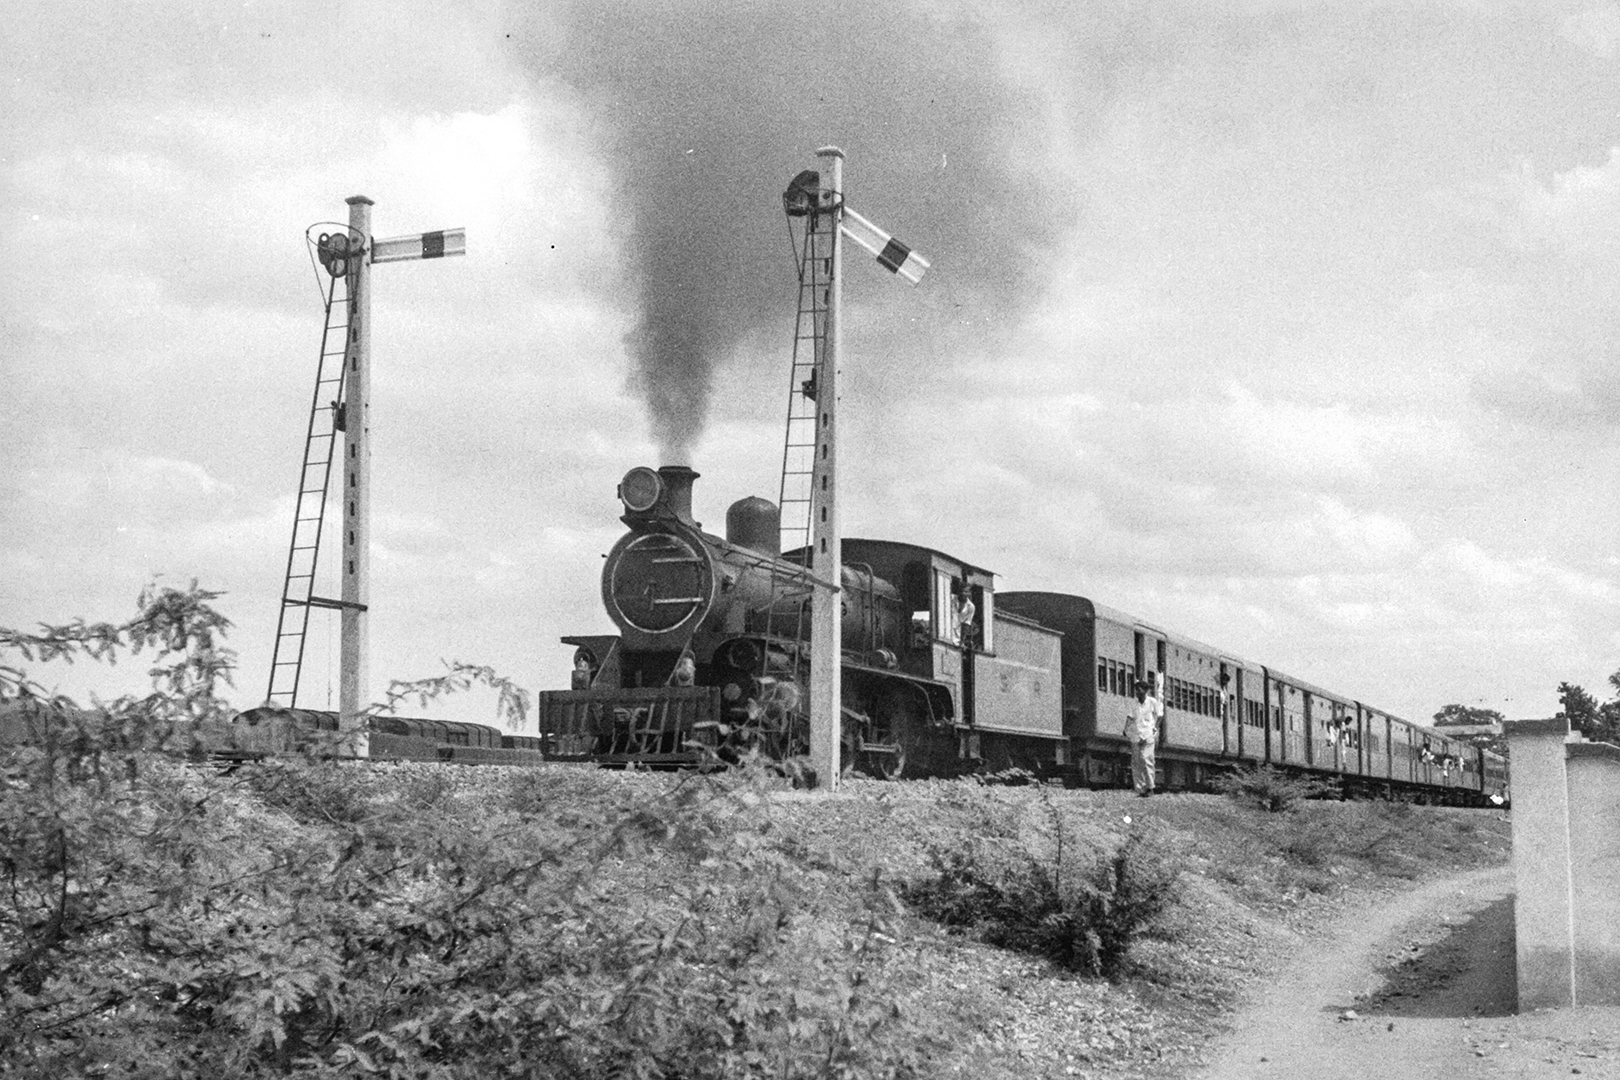 Steam train receiving the home signal clearance to enter Manamadurai, Madras State in June 1965. Credit: Ian Manning and Poochi Venkat